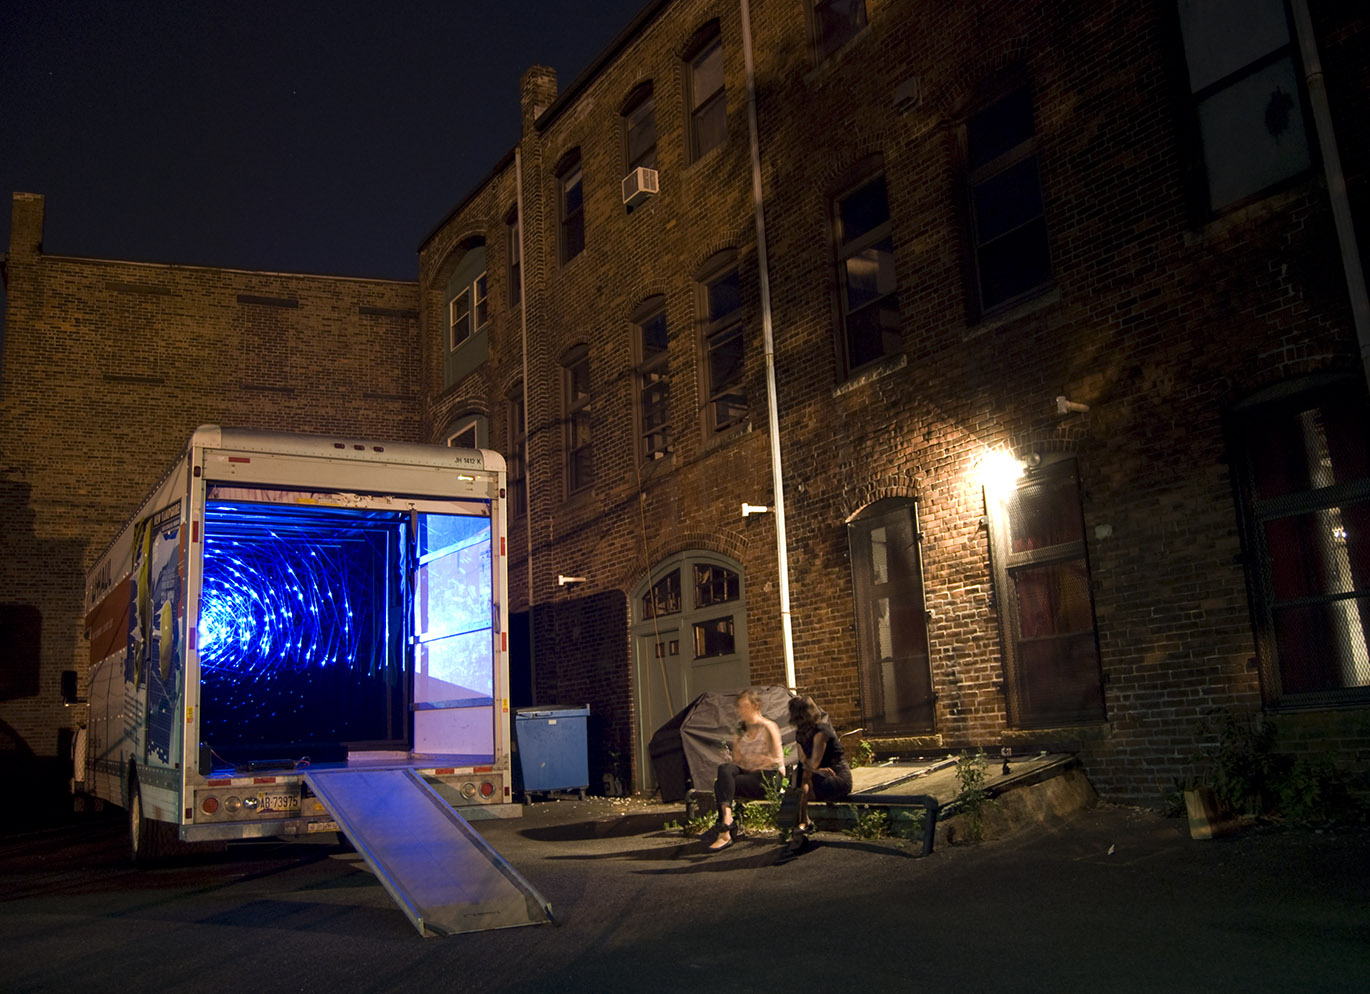 Phototrop, 2012, collaboration with Vela Phelan, Part of the White Walls Boston. Video projected in a U-Haul Truck, projection, ice blue fishing line, duvateen, wood. Five different locations around Cambridge and Boston, MA